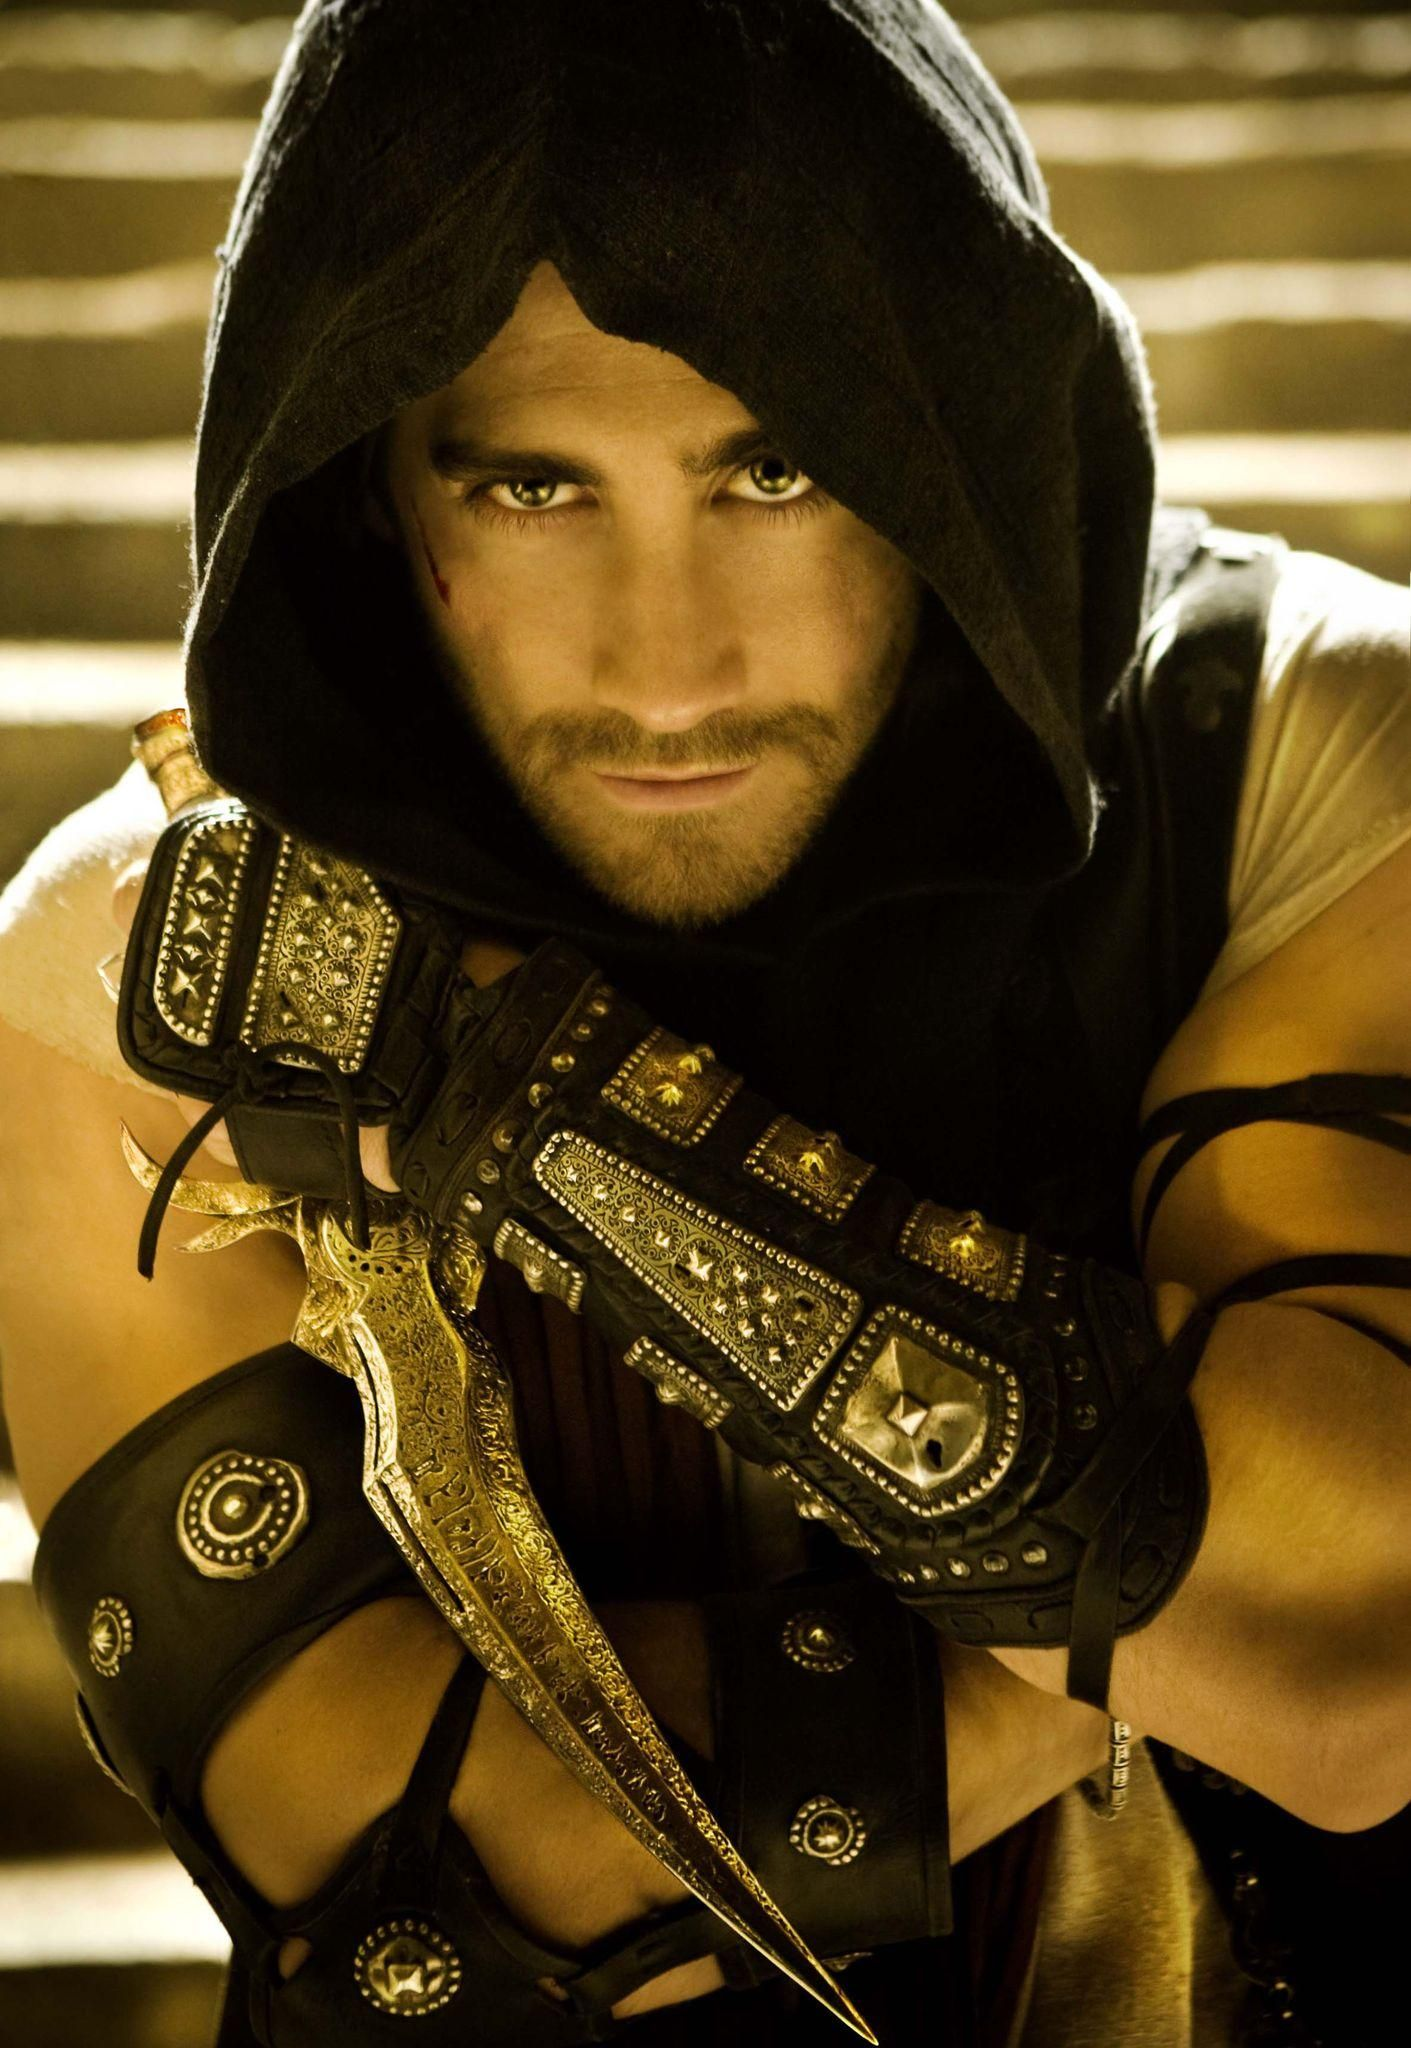 Jake gyllenhaal iphone wallpaper tumblr - Still Of Jake Gyllenhaal In Prince Of Persia The Sands Of Time 2010